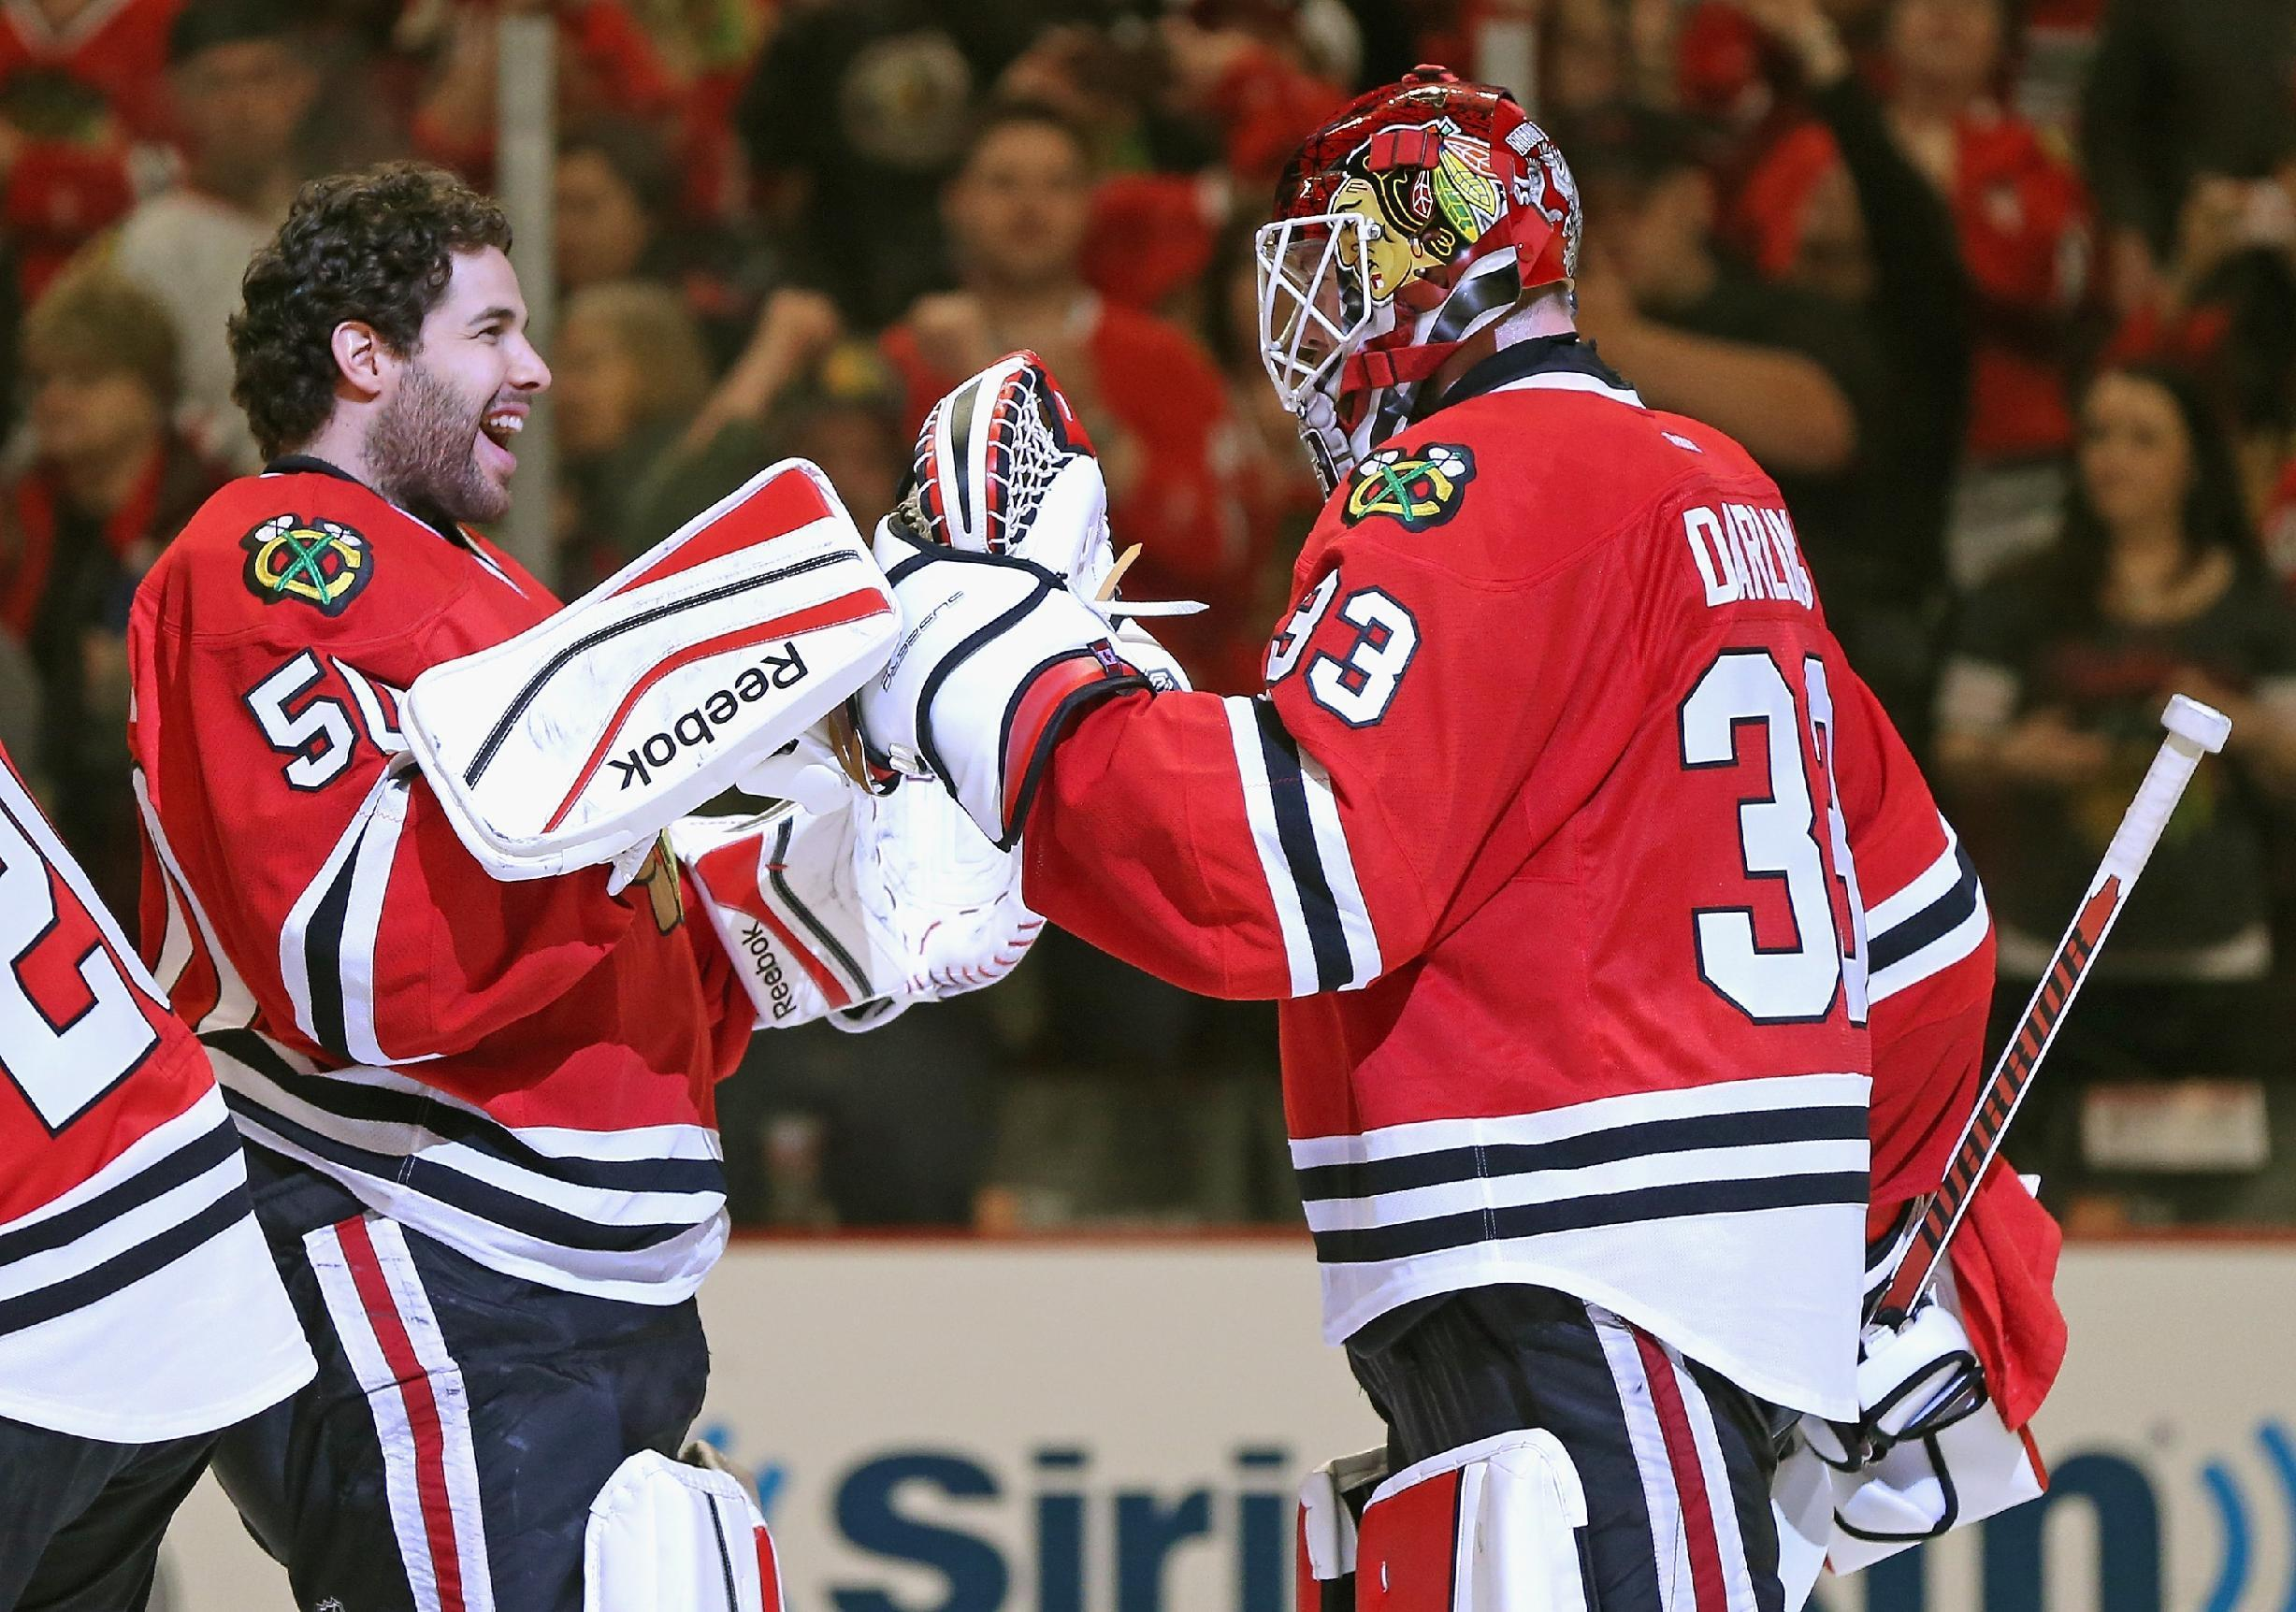 How bad are Corey Crawford's playoff problems? (Trending Topics)